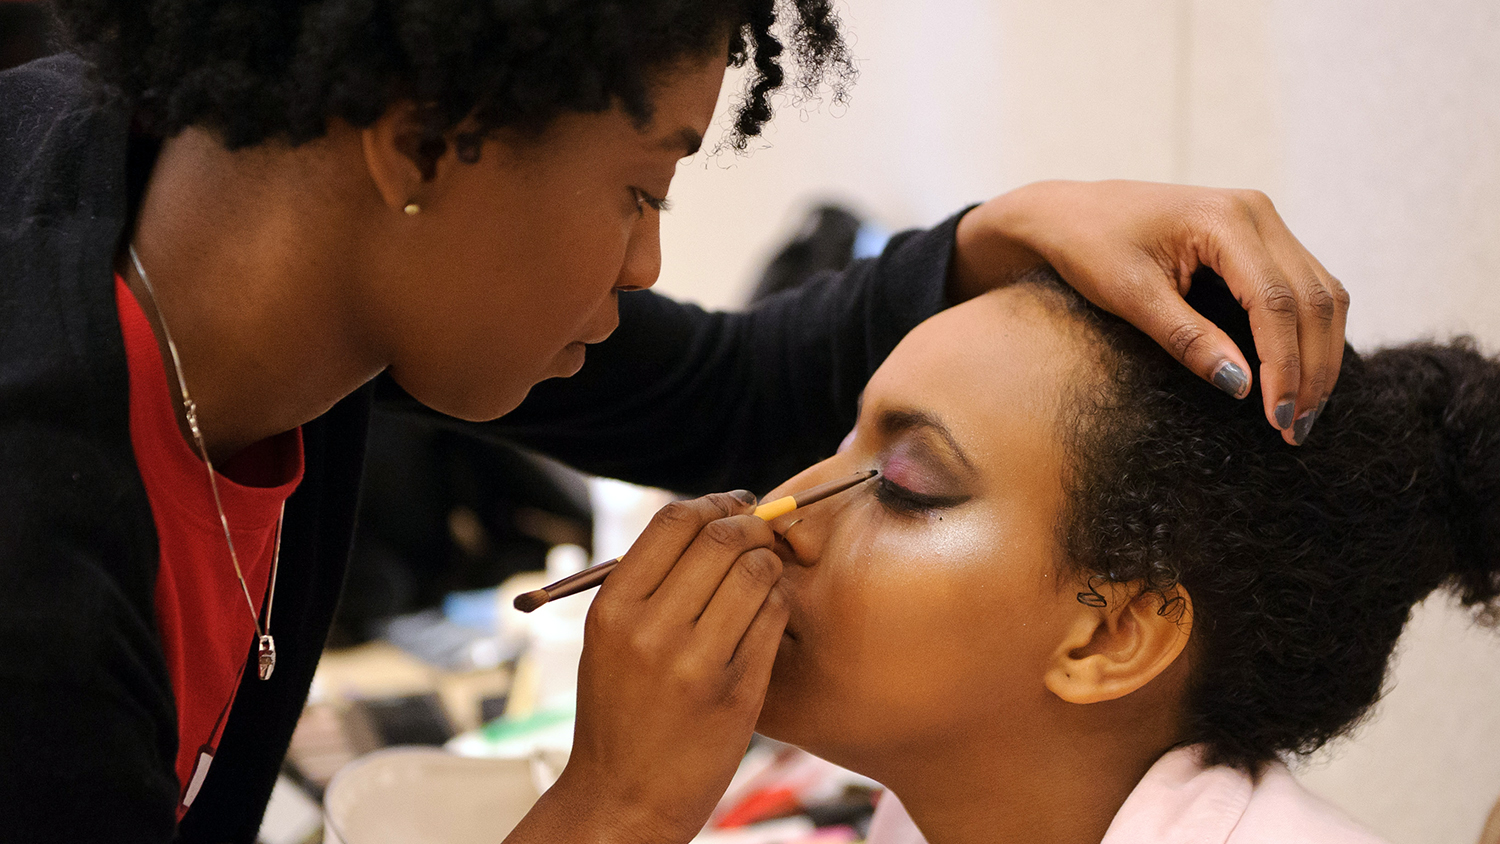 A makeup artist applies her craft to a student model.